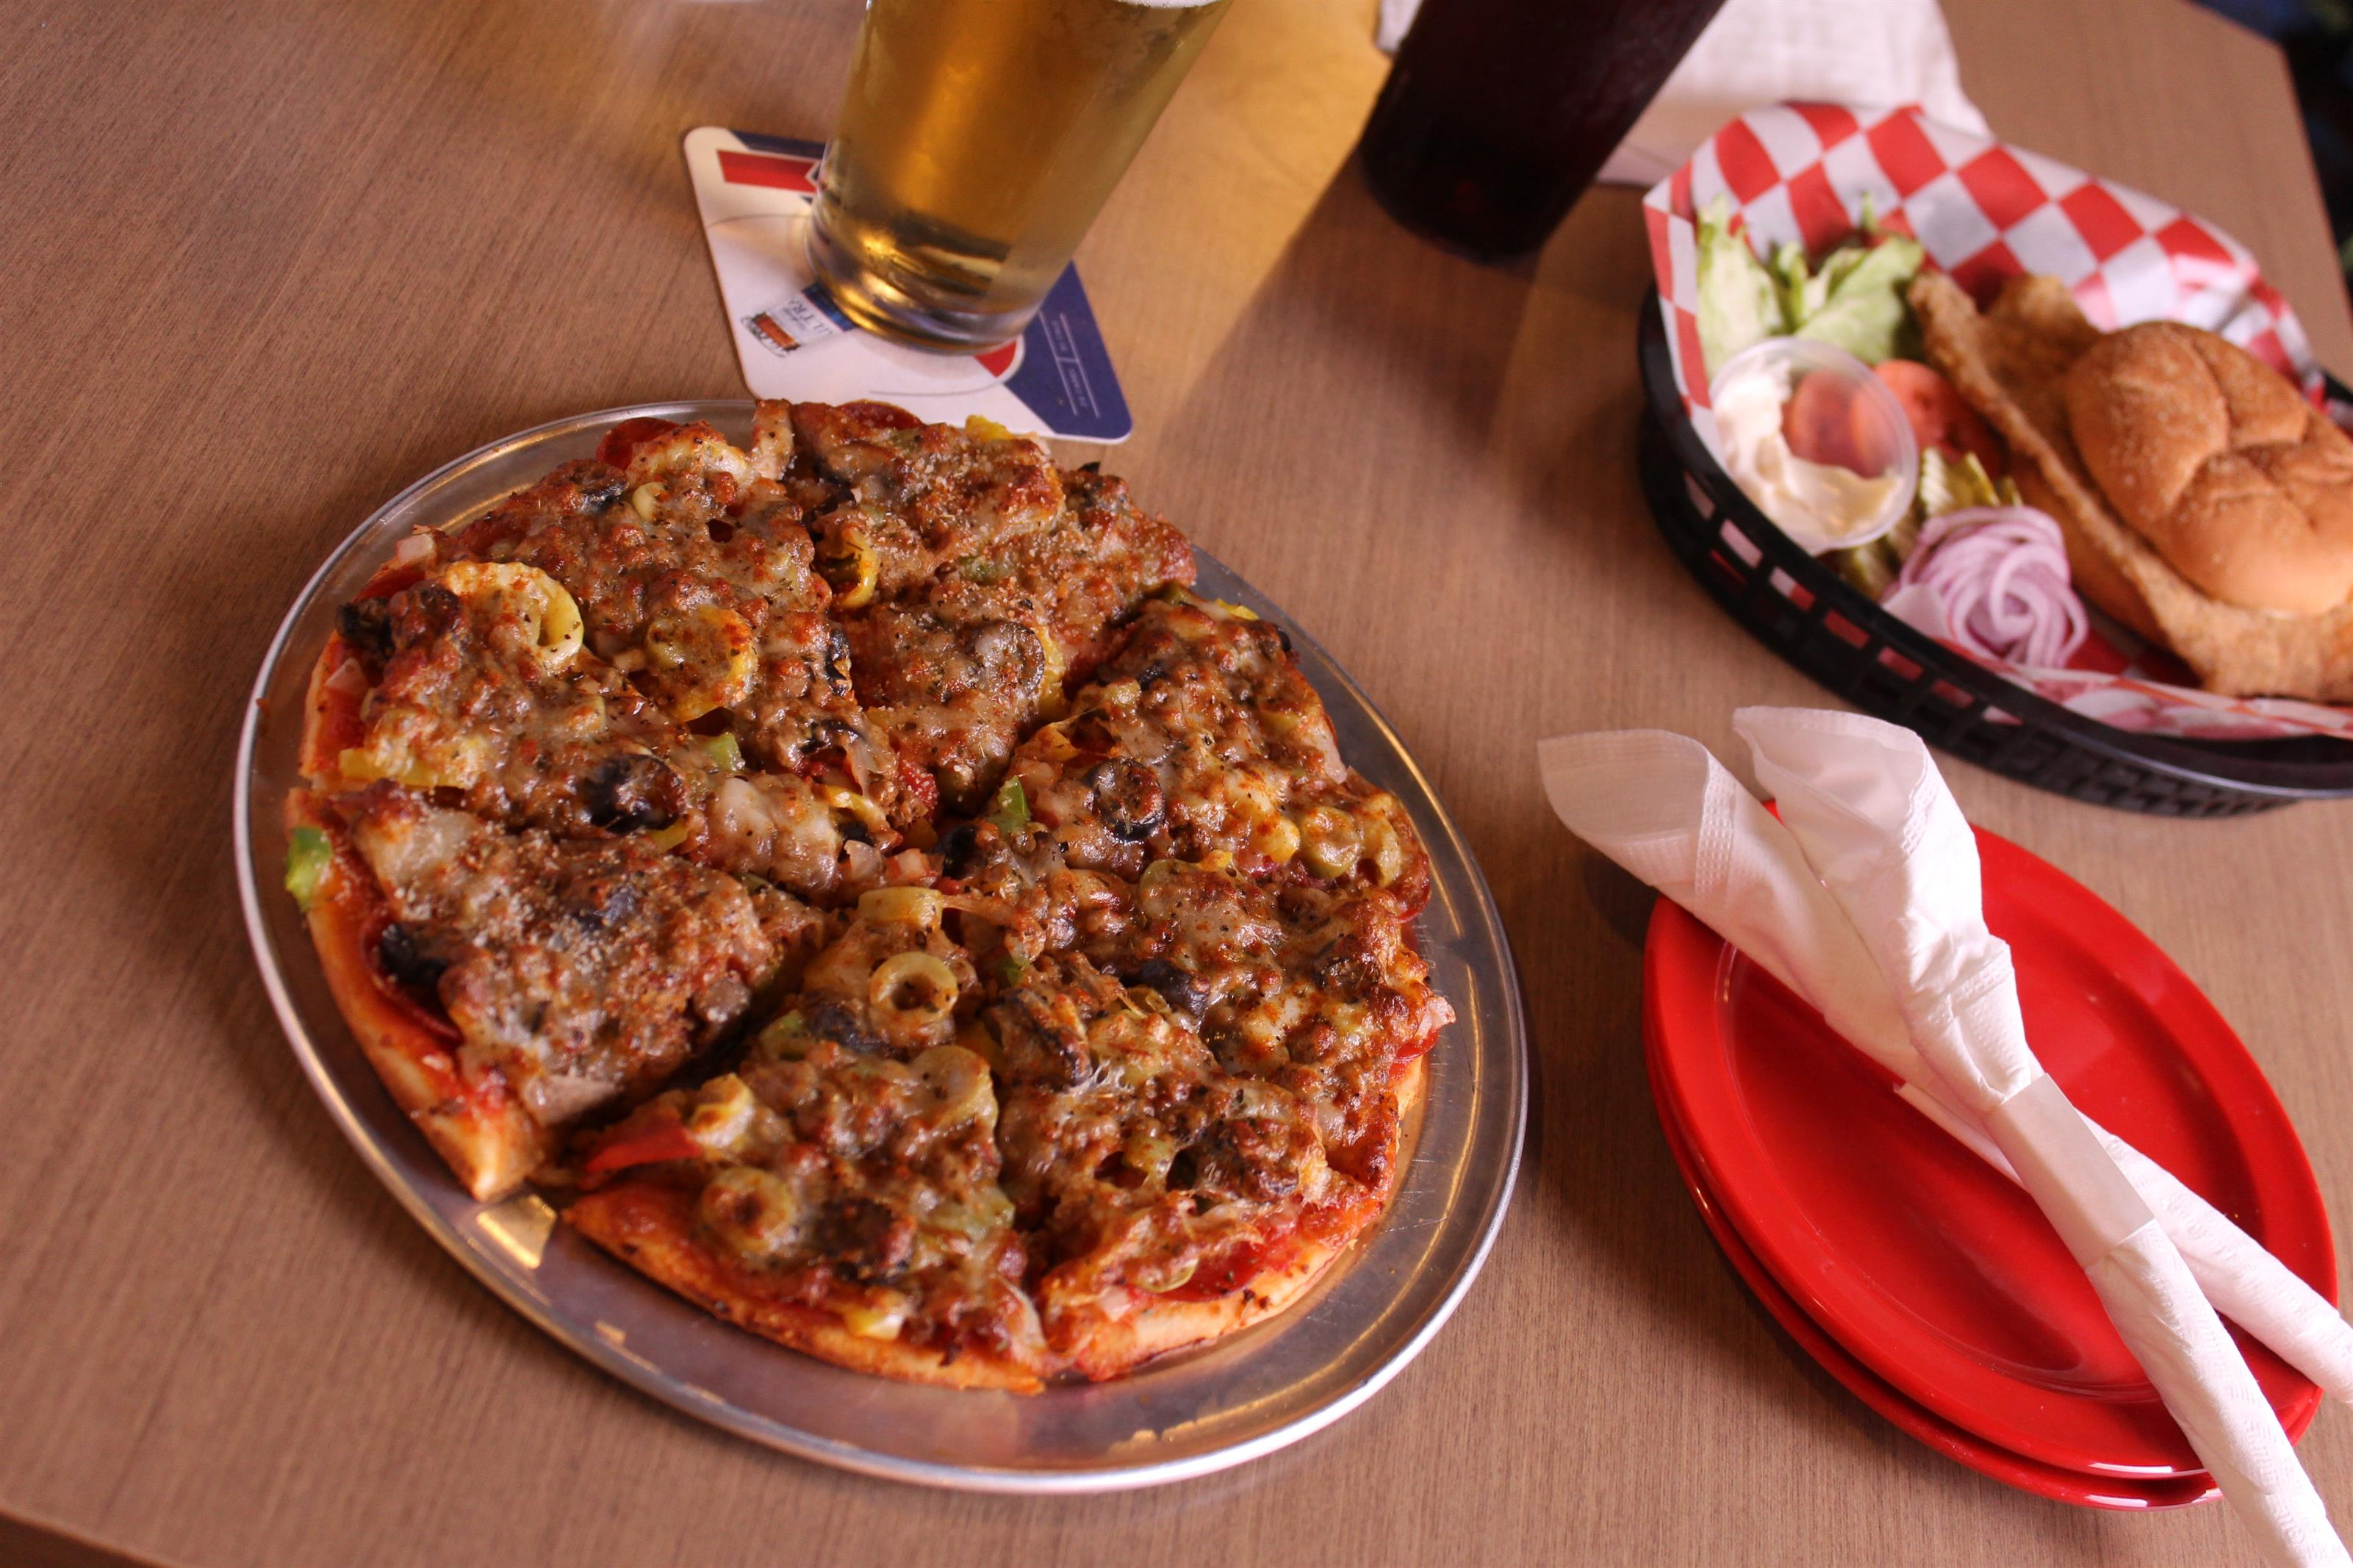 slice pizza pie with beer glass and fried chicken sandwich